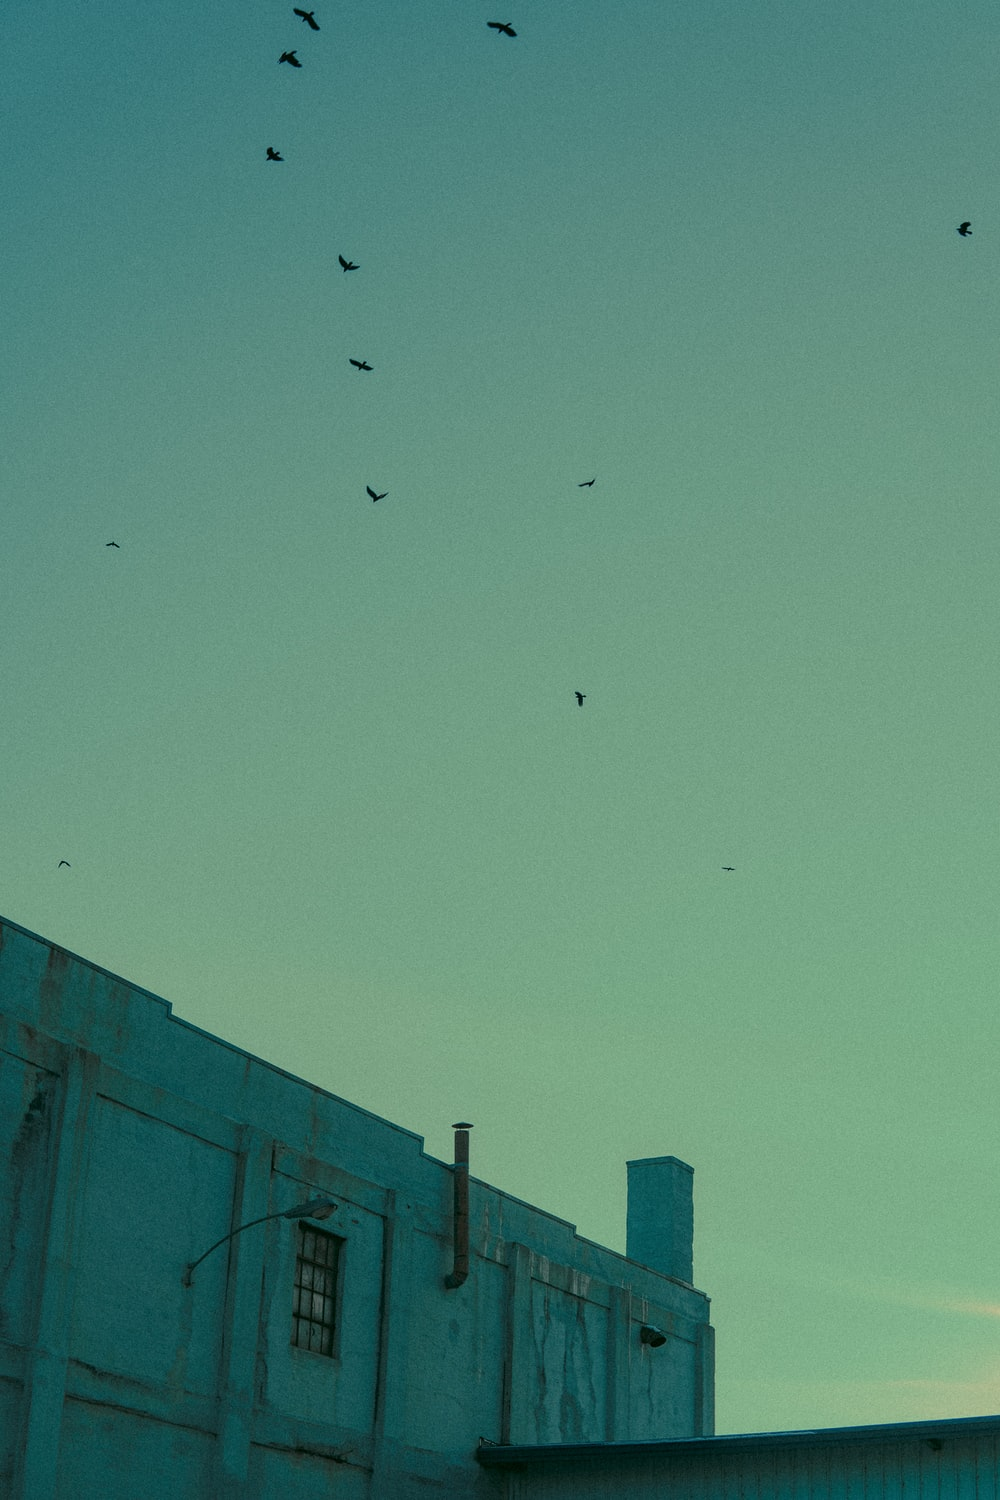 flock of birds flying over the building during daytime